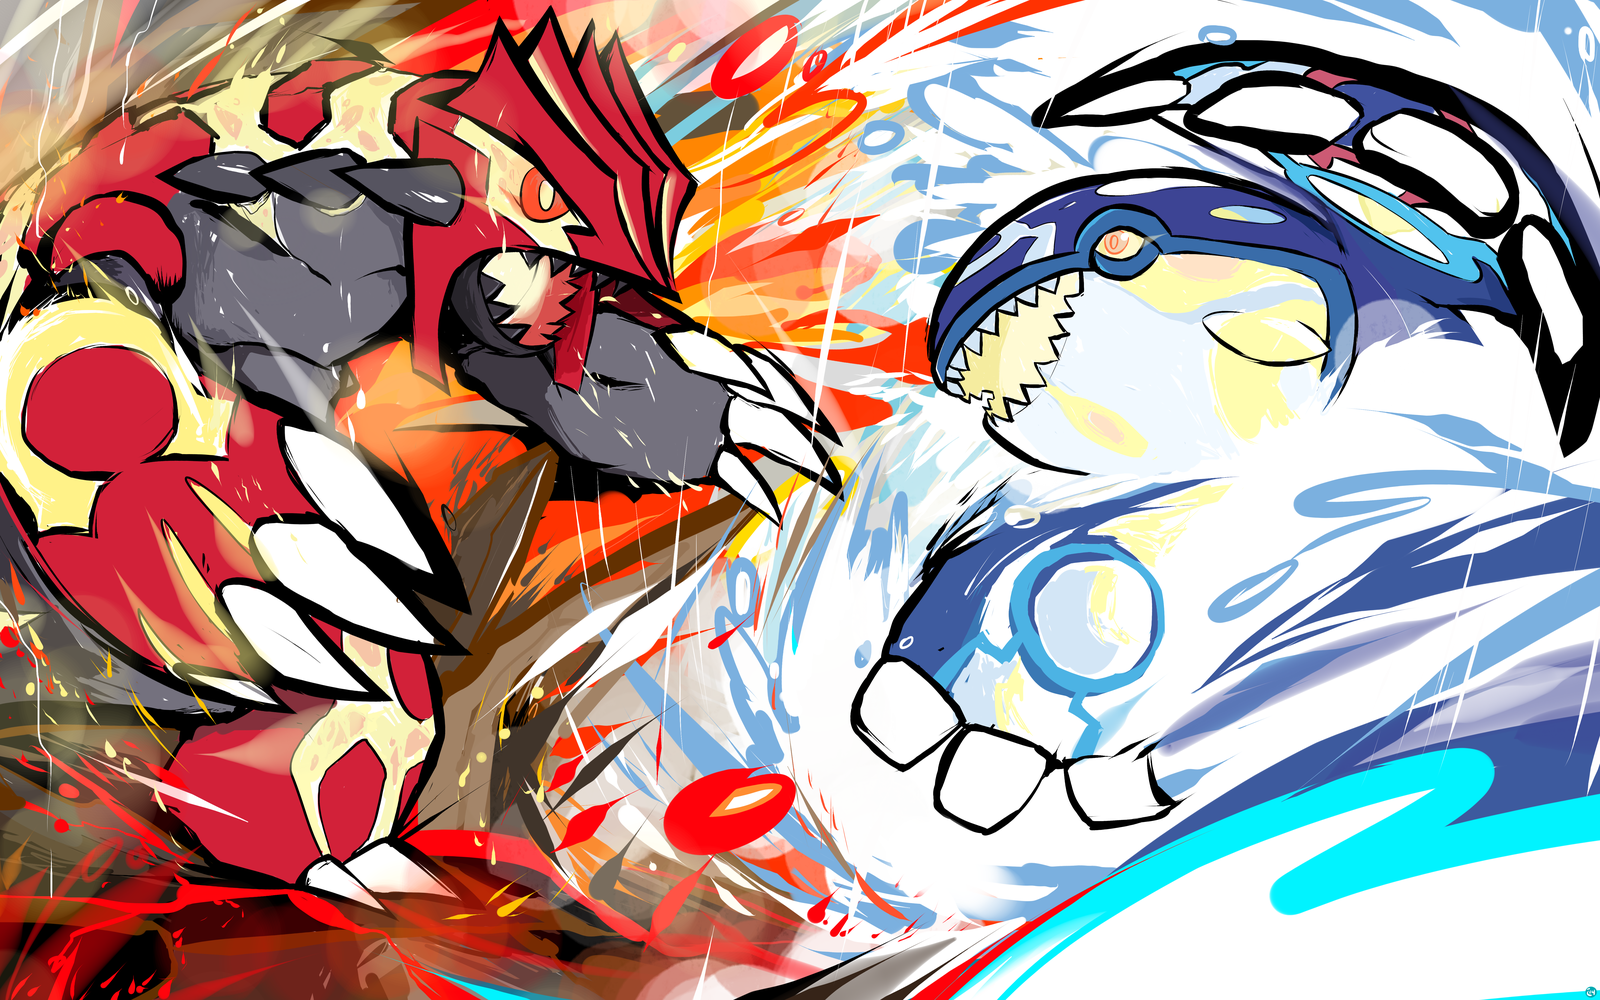 50 Primal Groudon And Kyogre Wallpaper On Wallpapersafari